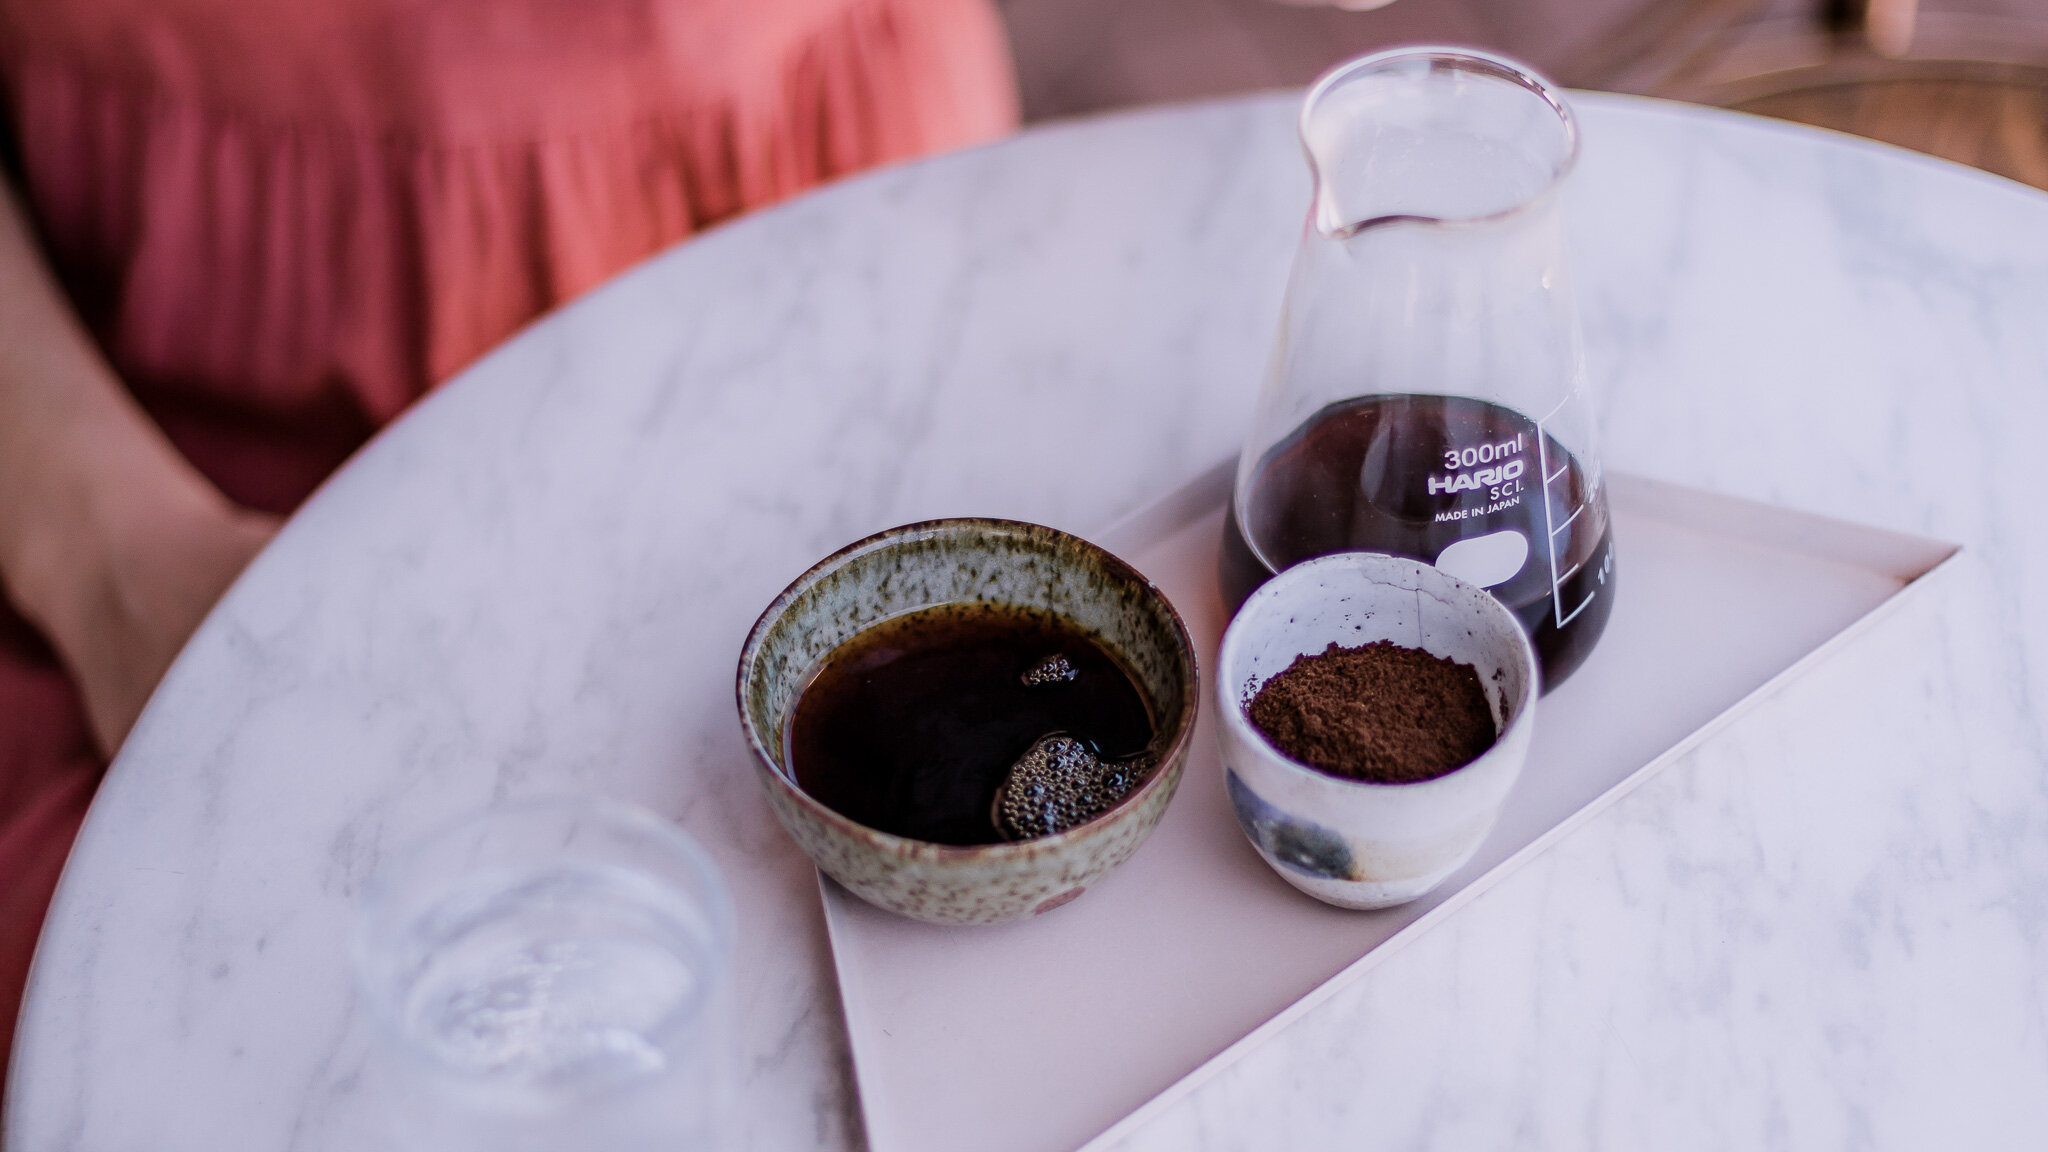 Enjoy your Hario V60. We like to serve our V60's with some grinds on the side so customers can experience the aroma of the freshly ground single origin.